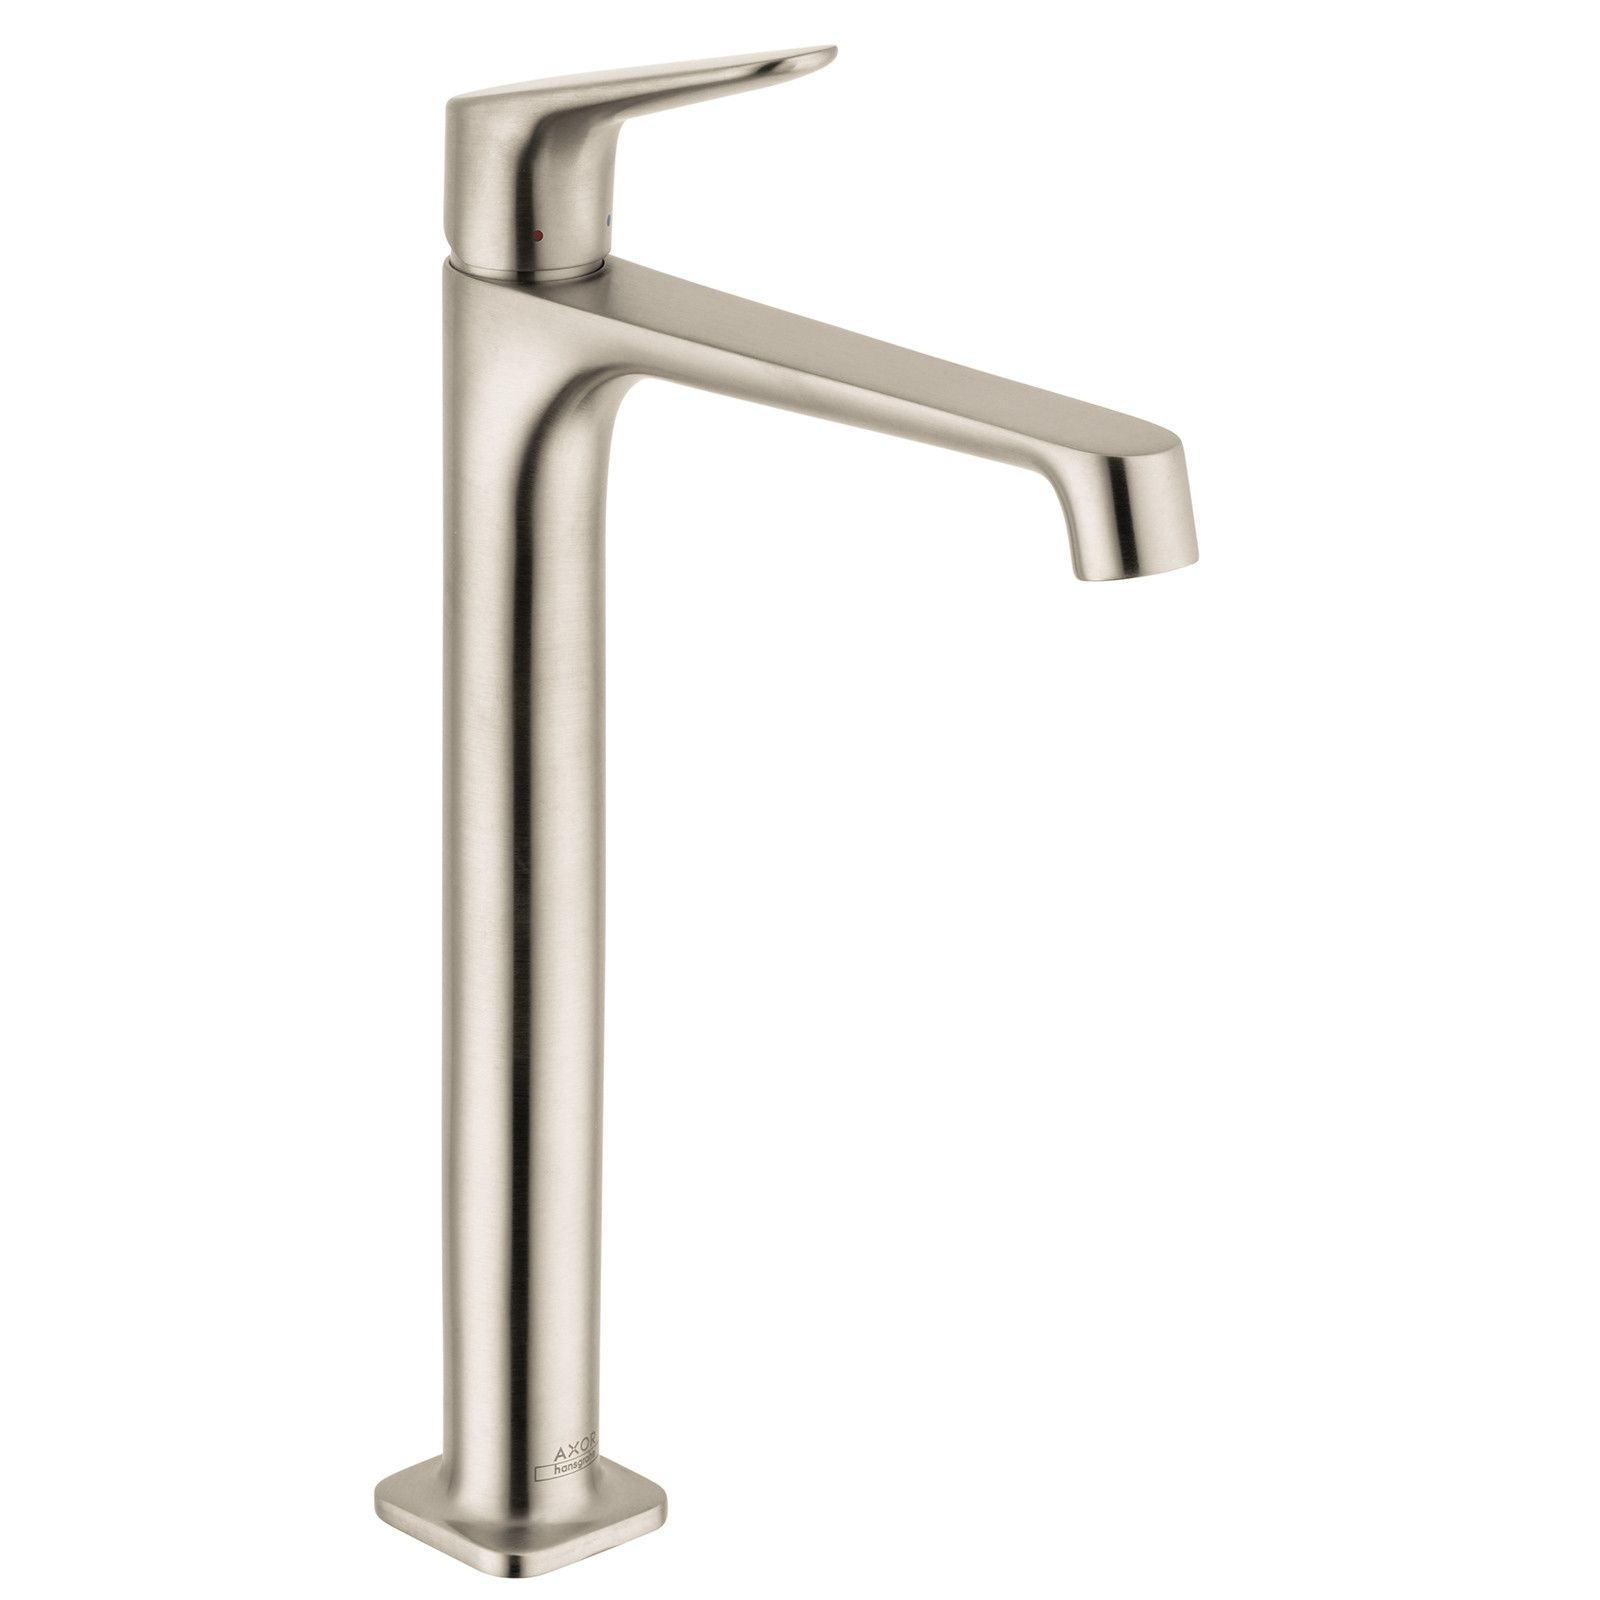 Hansgrohe 34120821 Brushed Nickel Axor Citterio M Bathroom Faucet ...